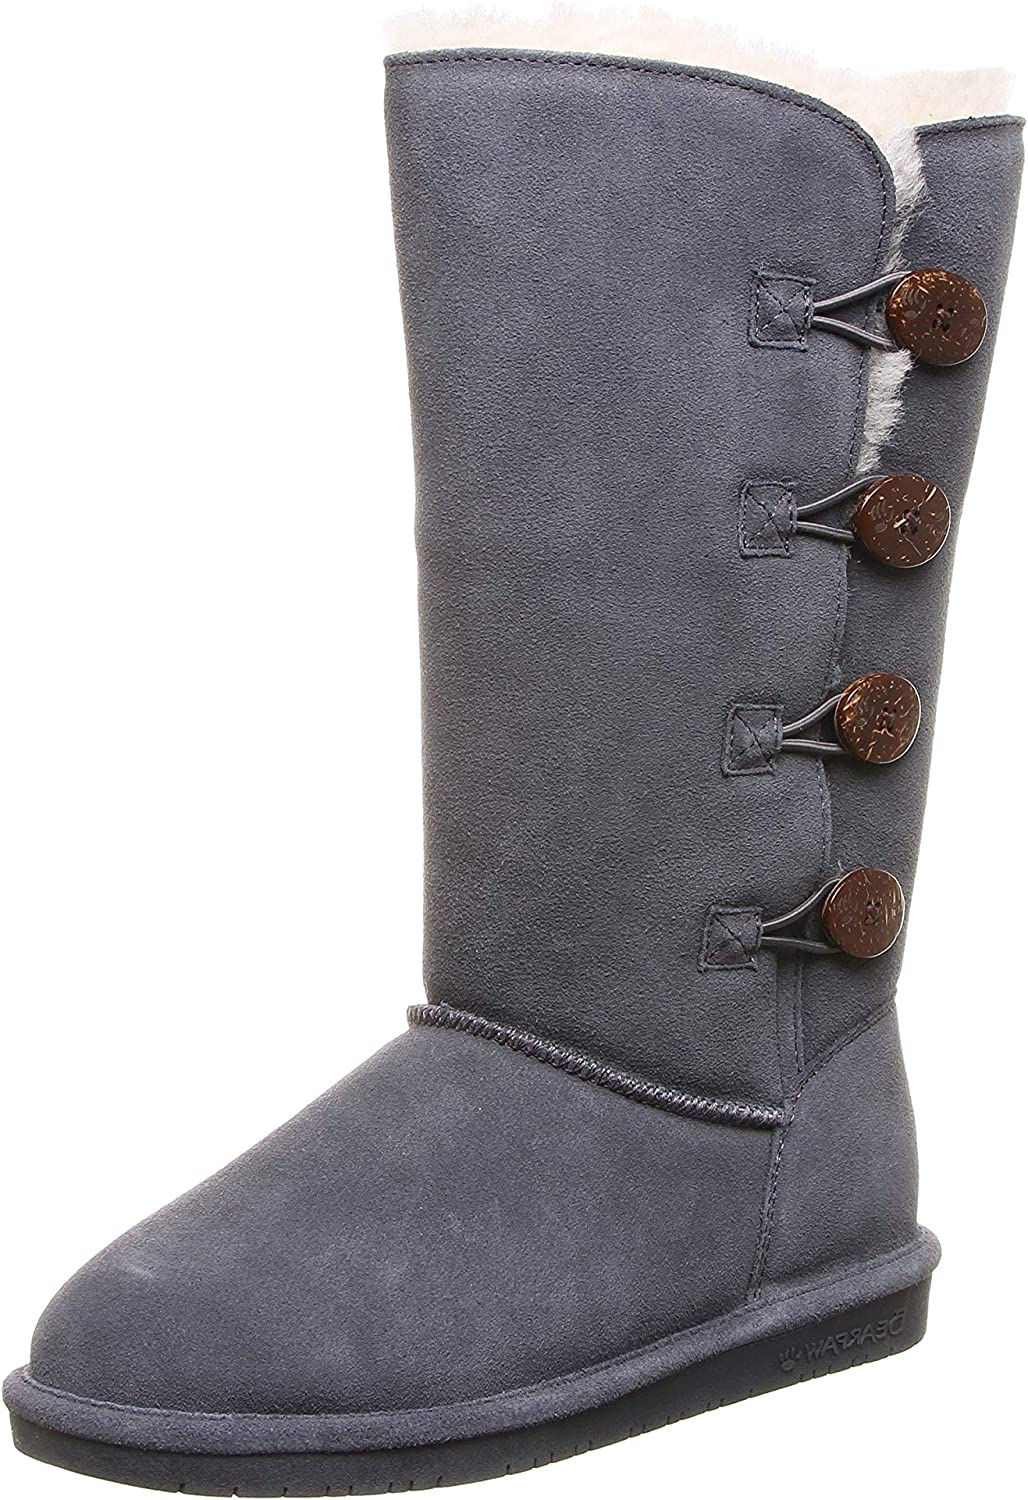 BEARPAW Women's Lori Boot, Charcoal Size 9